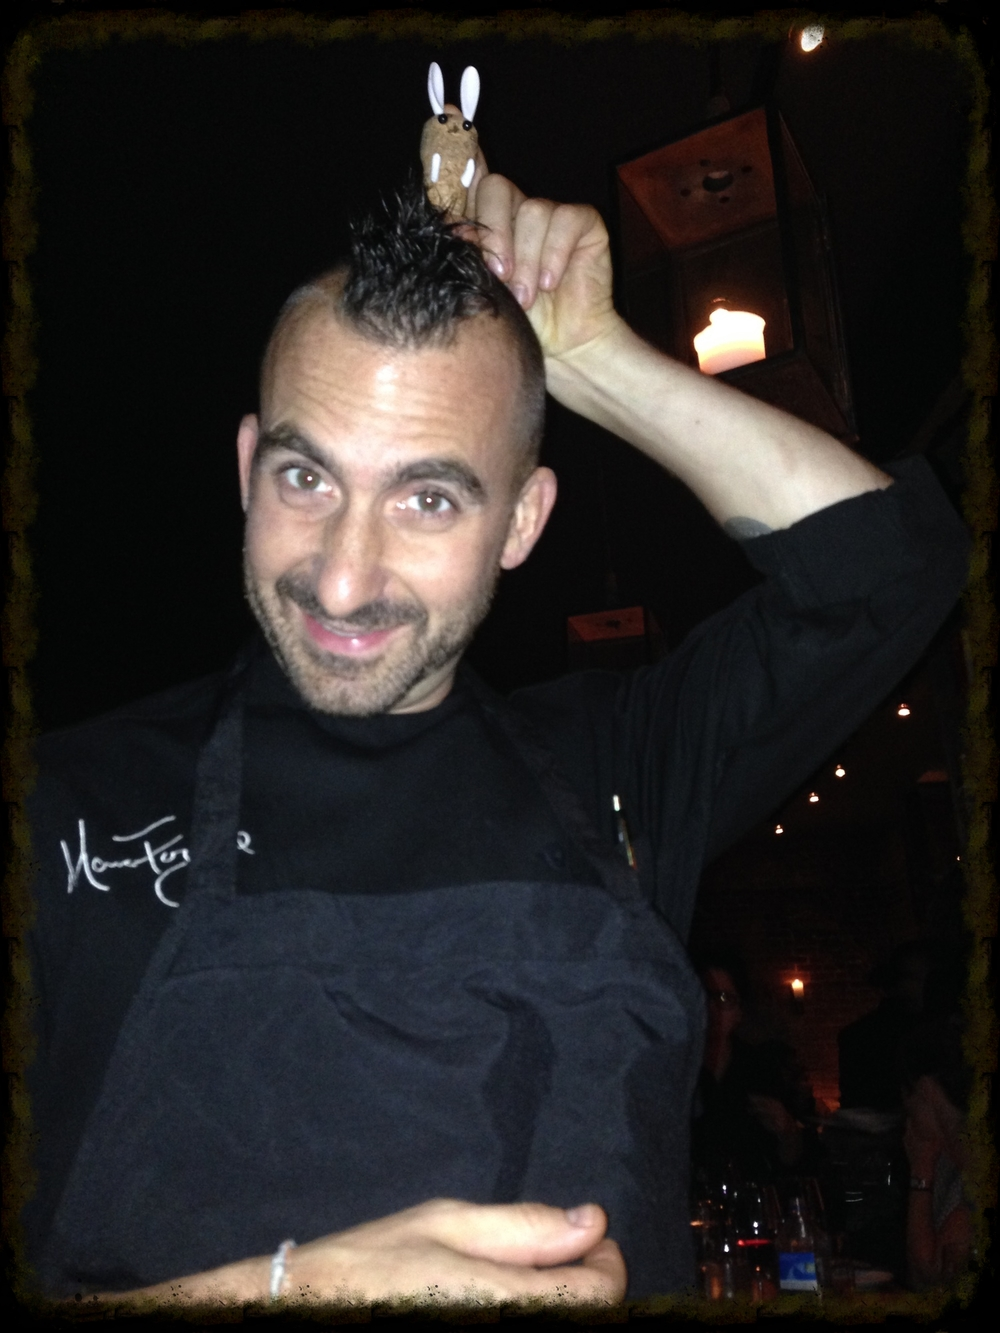 Iron Chef Marc Forgione... all work & play